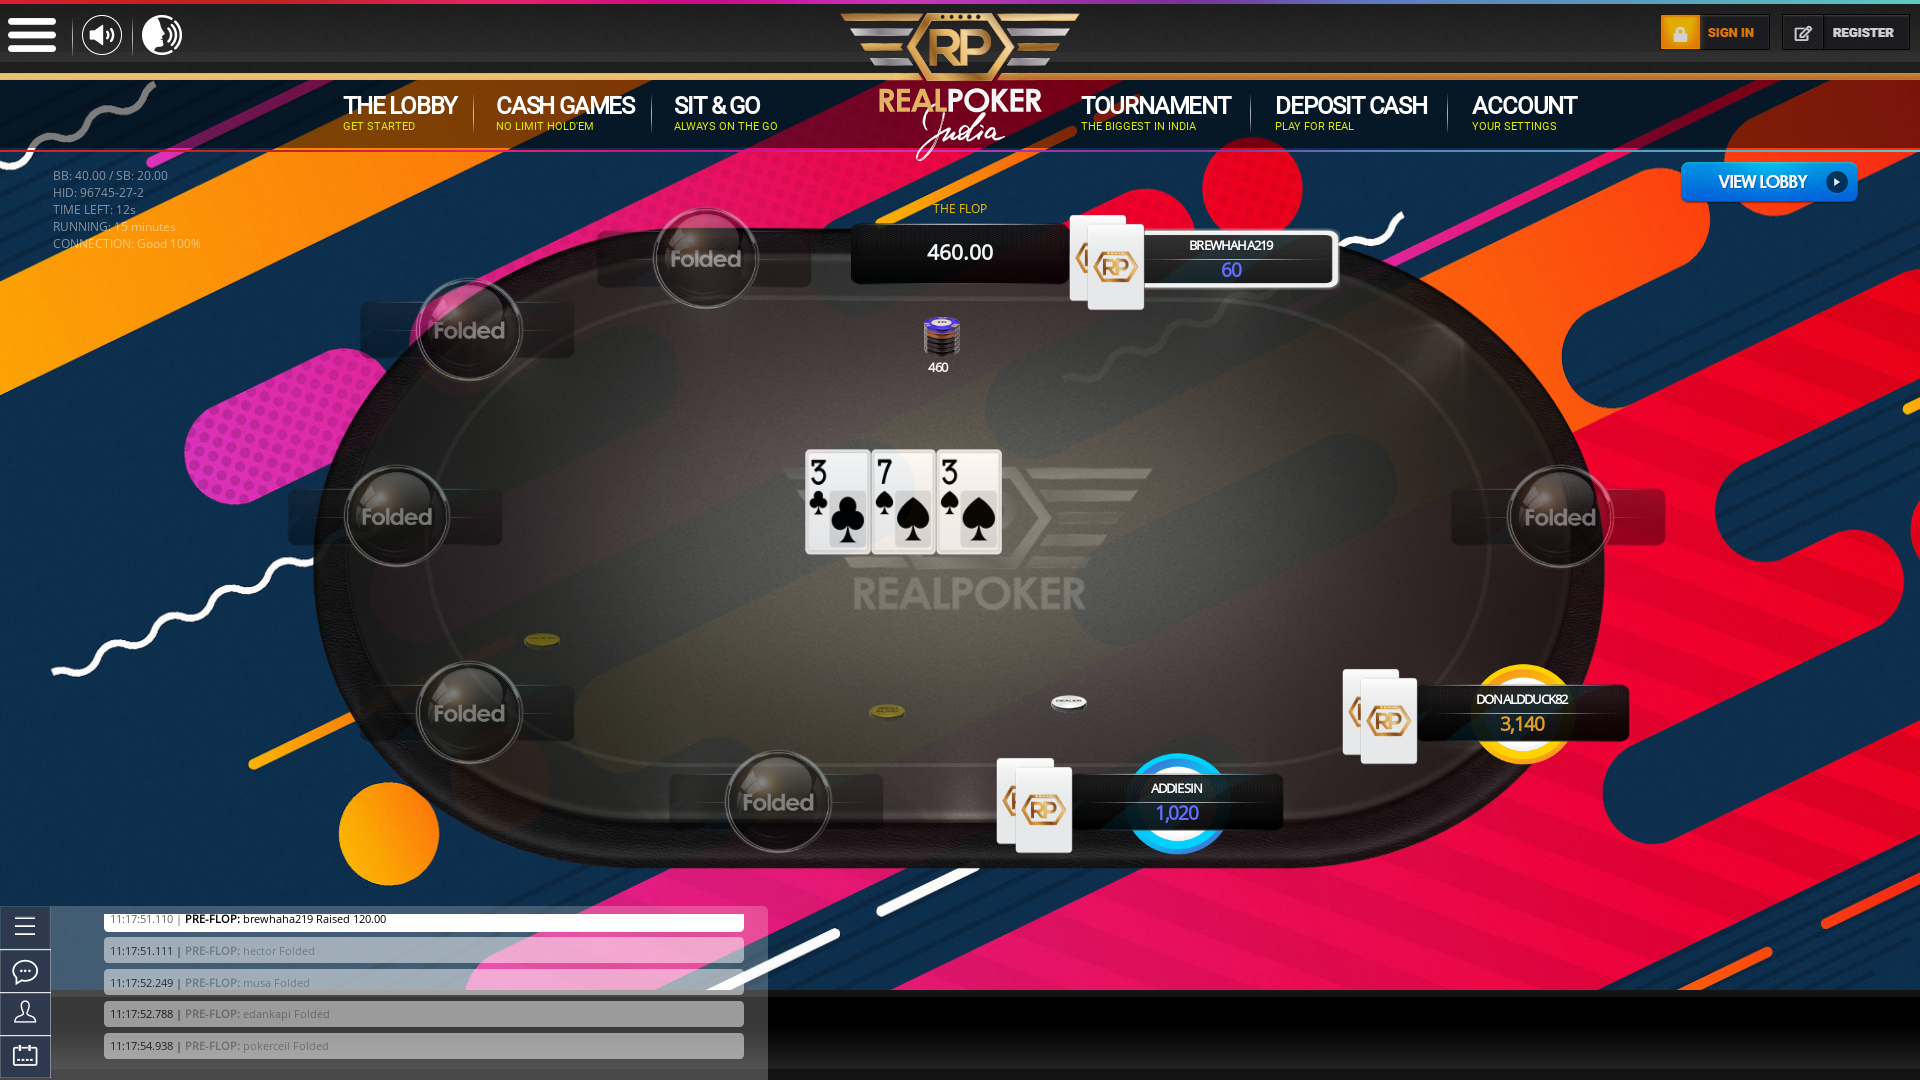 Indian 10 player poker in the 14th minute